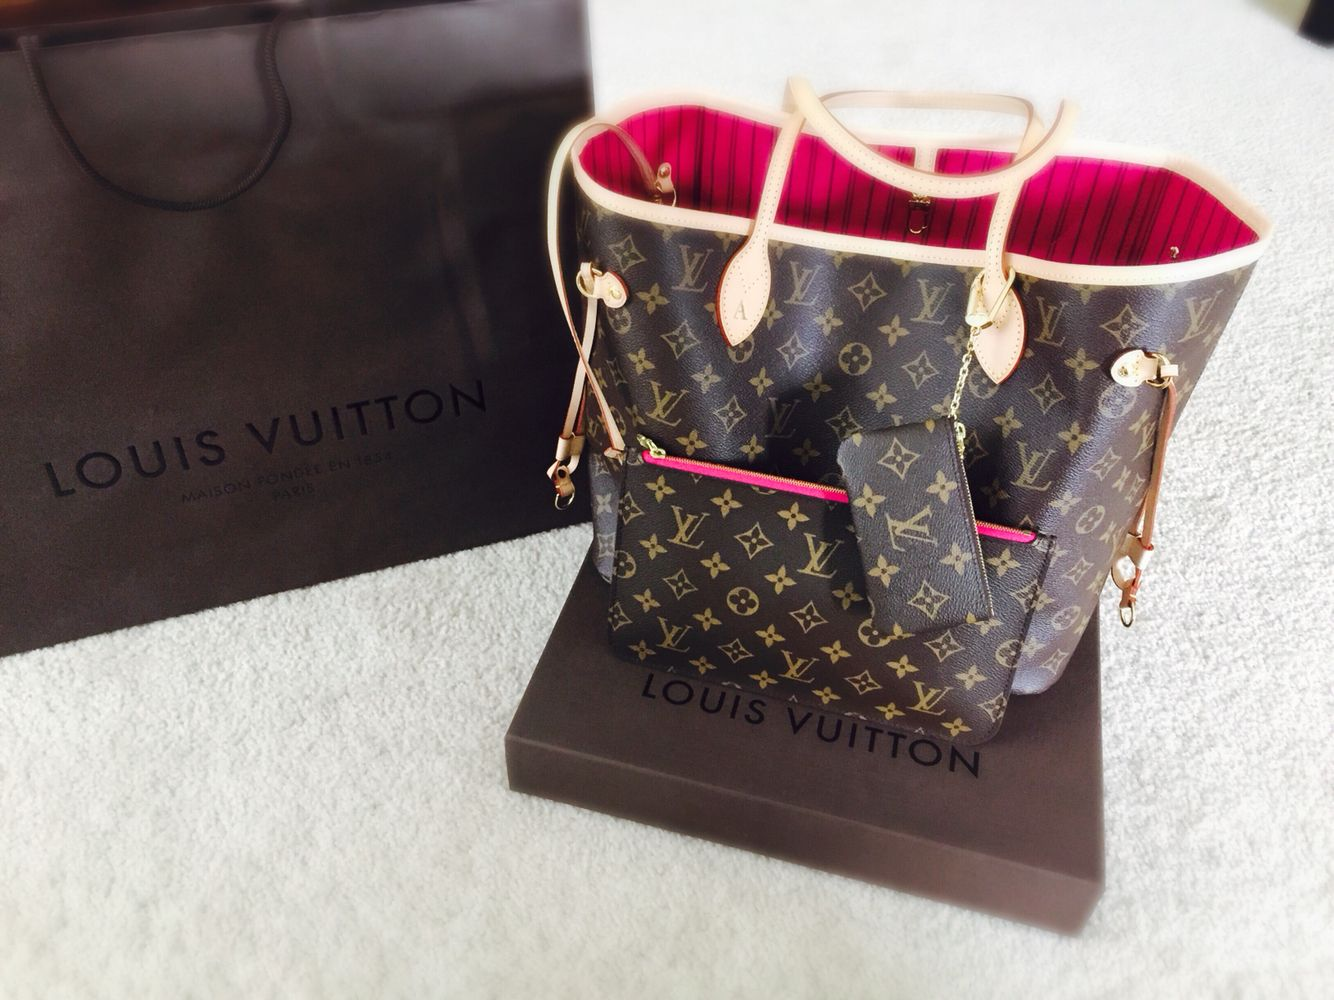 My 2017 Louis Vuitton Neverfull With Pink Inside Key Pouch Hanging From The Handle